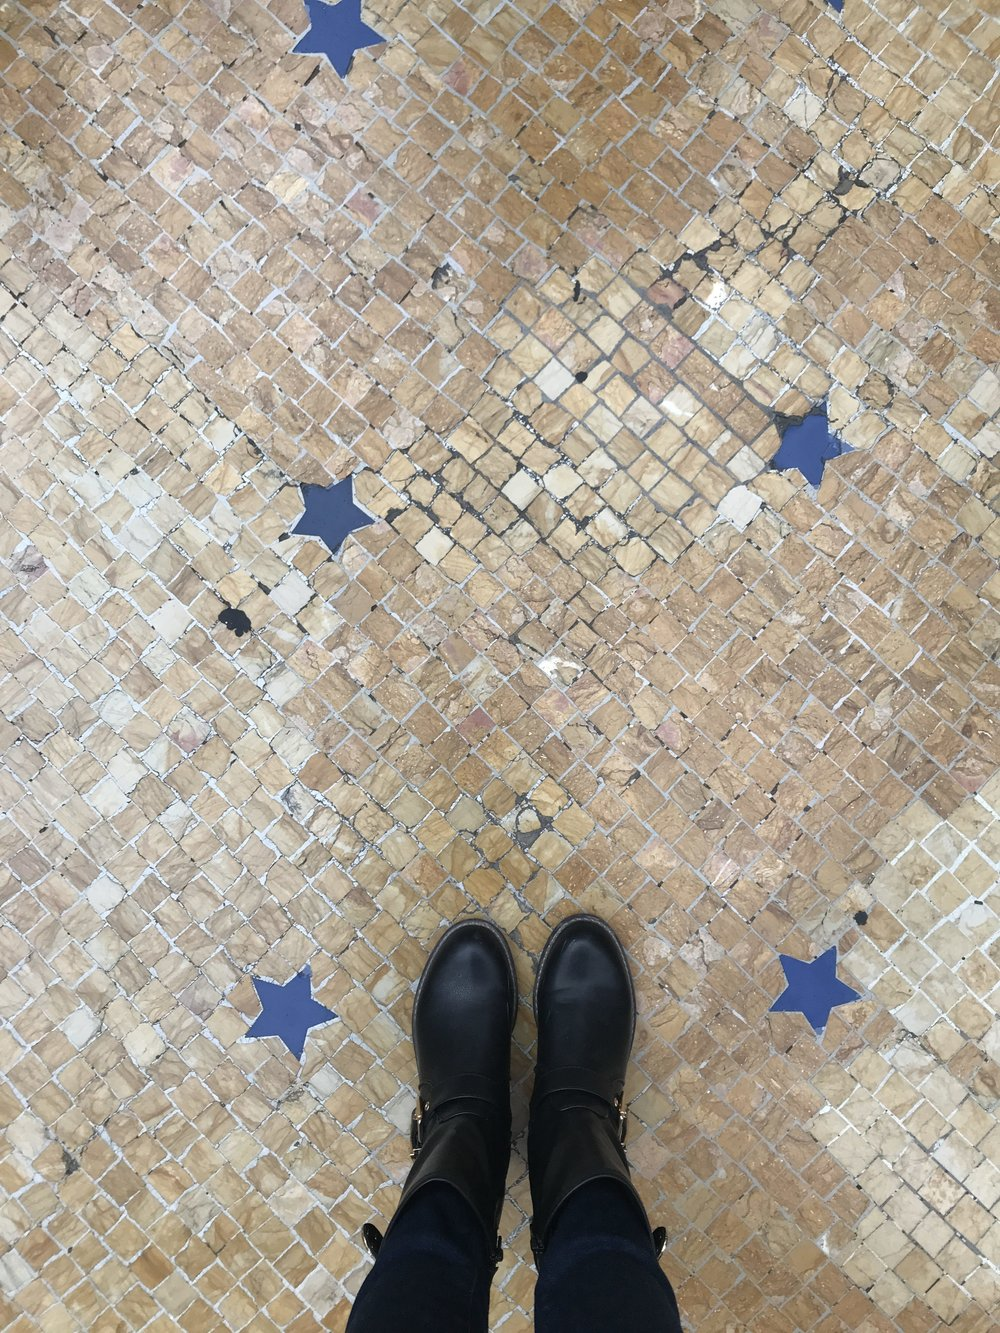 Tiles at Milan's Galleria